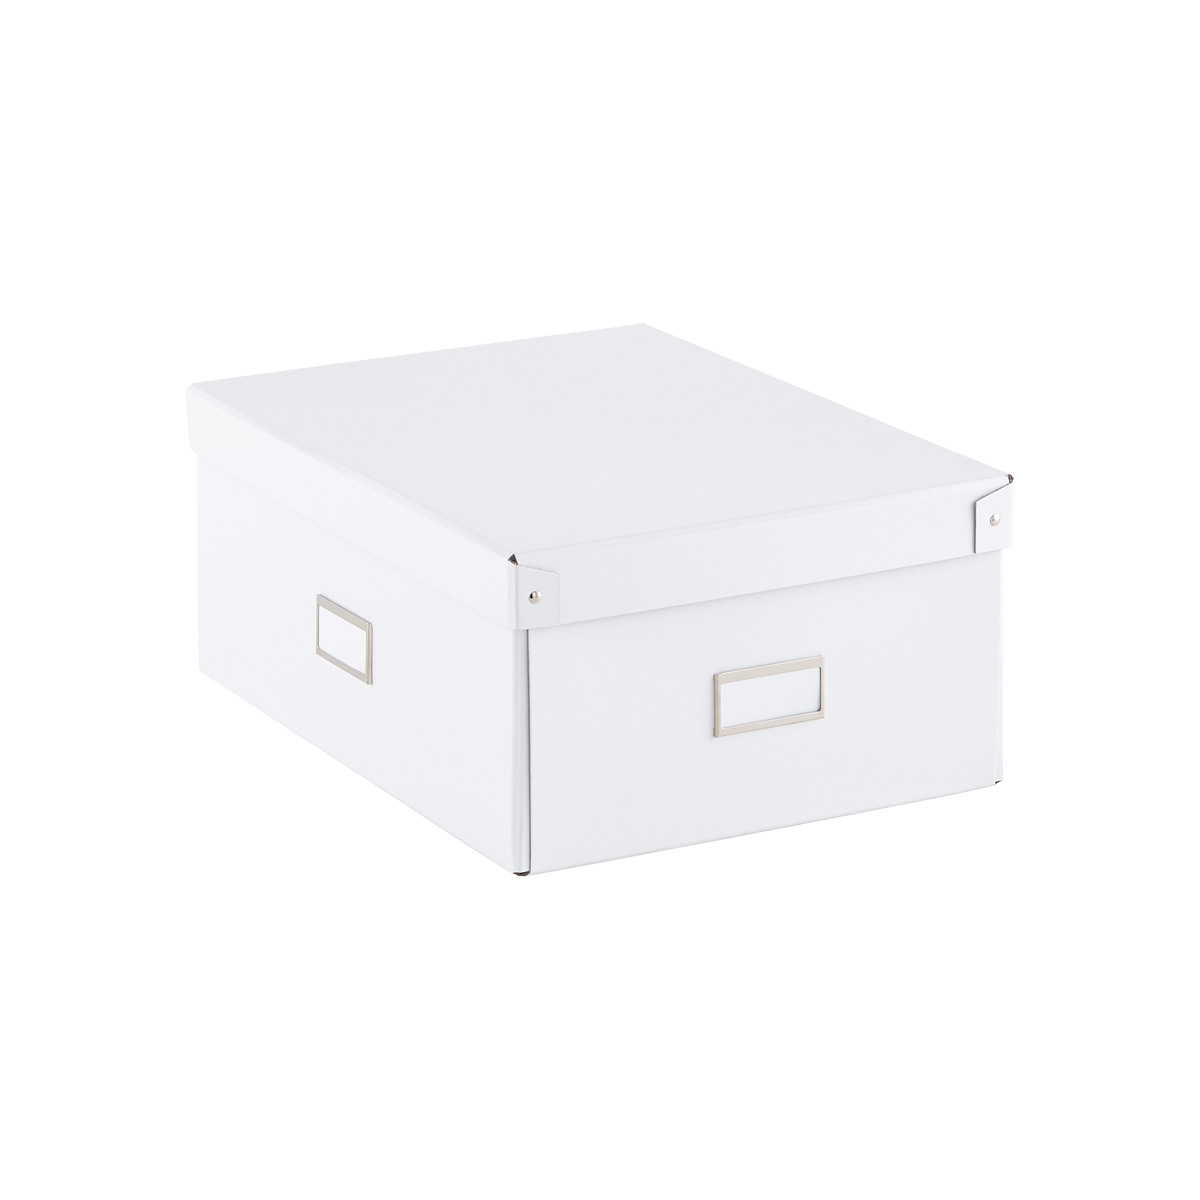 Our White Bigso Storage Boxes  sc 1 st  The Container Store & Our White Bigso Storage Boxes | The Container Store